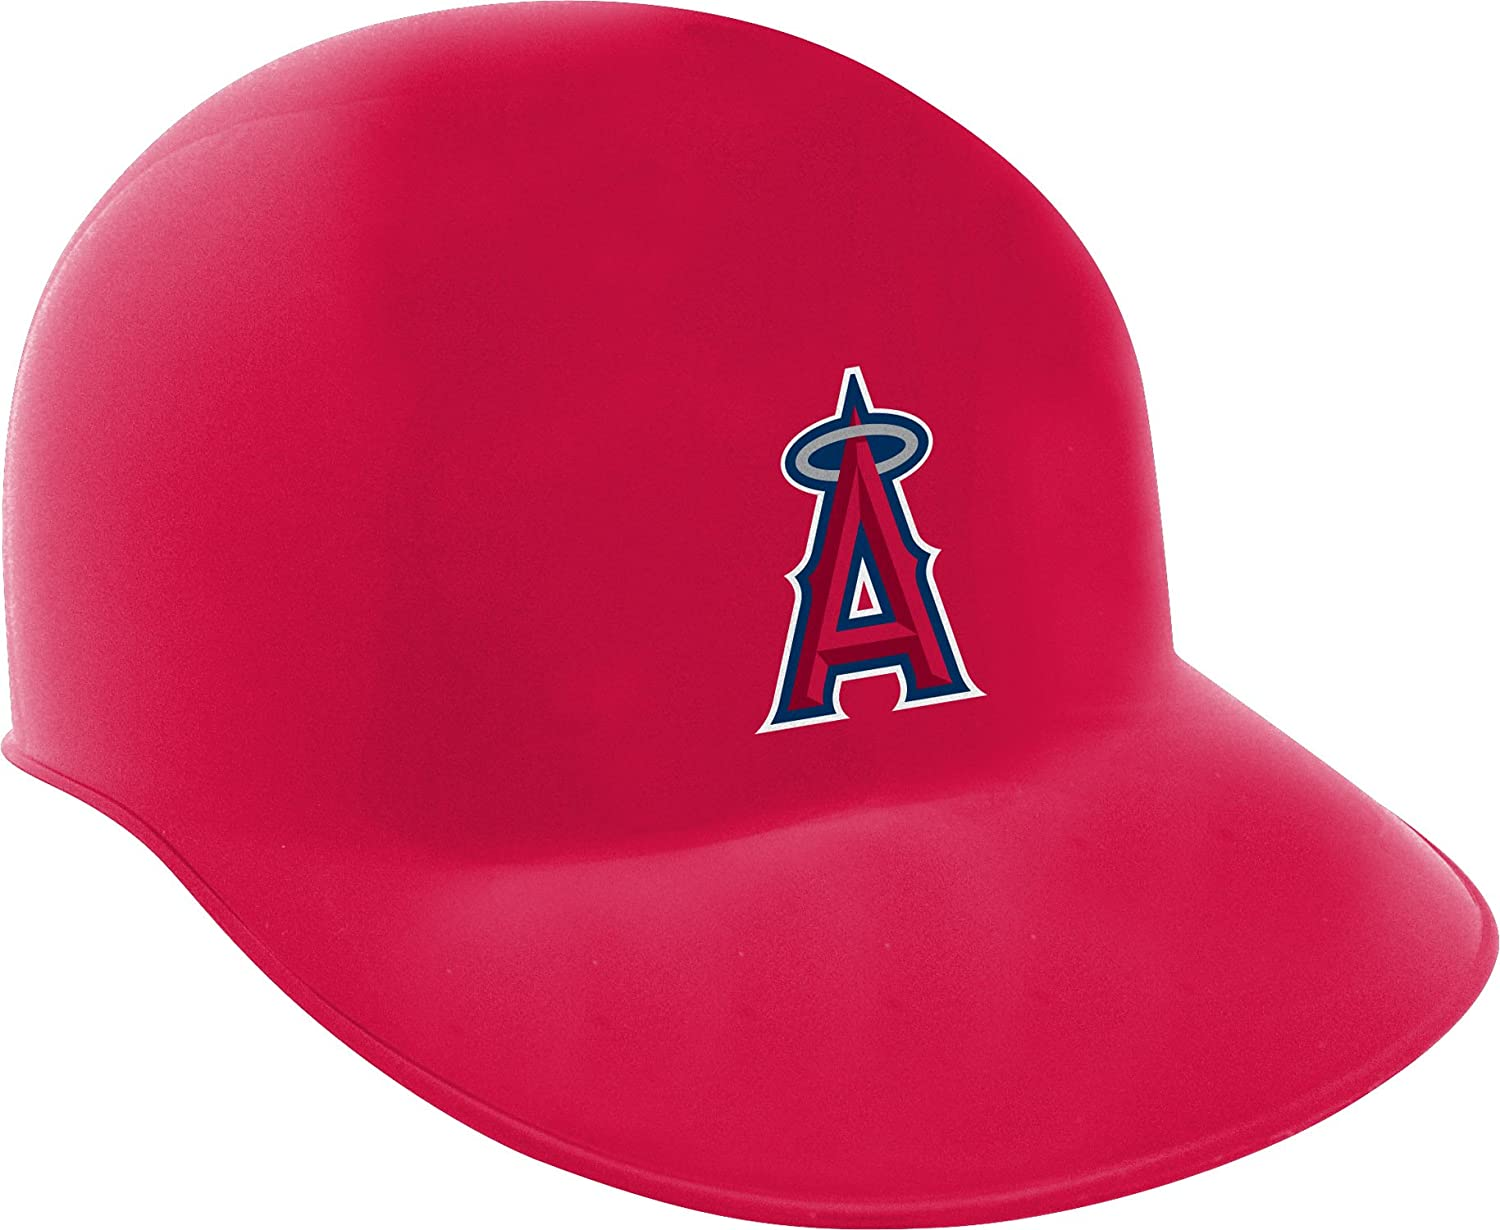 Animer and price revision Rawlings Official MLB All items in the store Replica Helmets